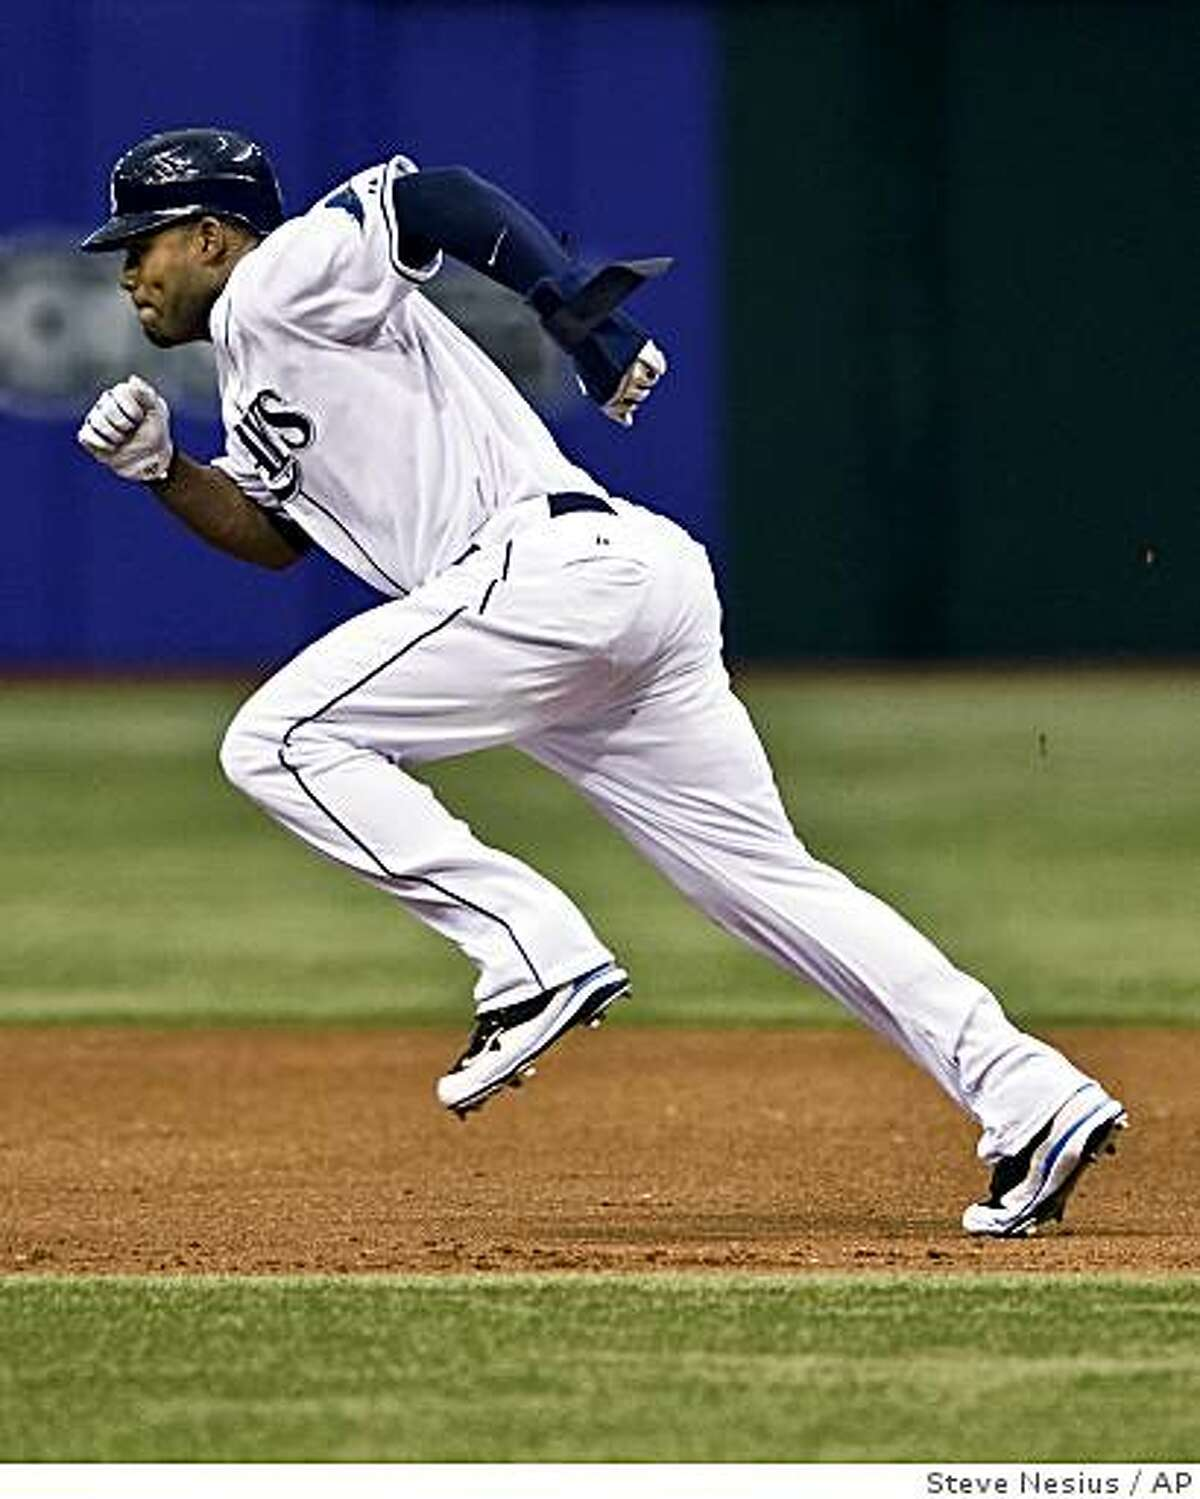 Tampa Bay Rays' Carl Crawford races toward second as he steals a base during the first inning of a game against the Baltimore Orioles on Tuesday, May 5, 2009, in St. Petersburg, Fla.